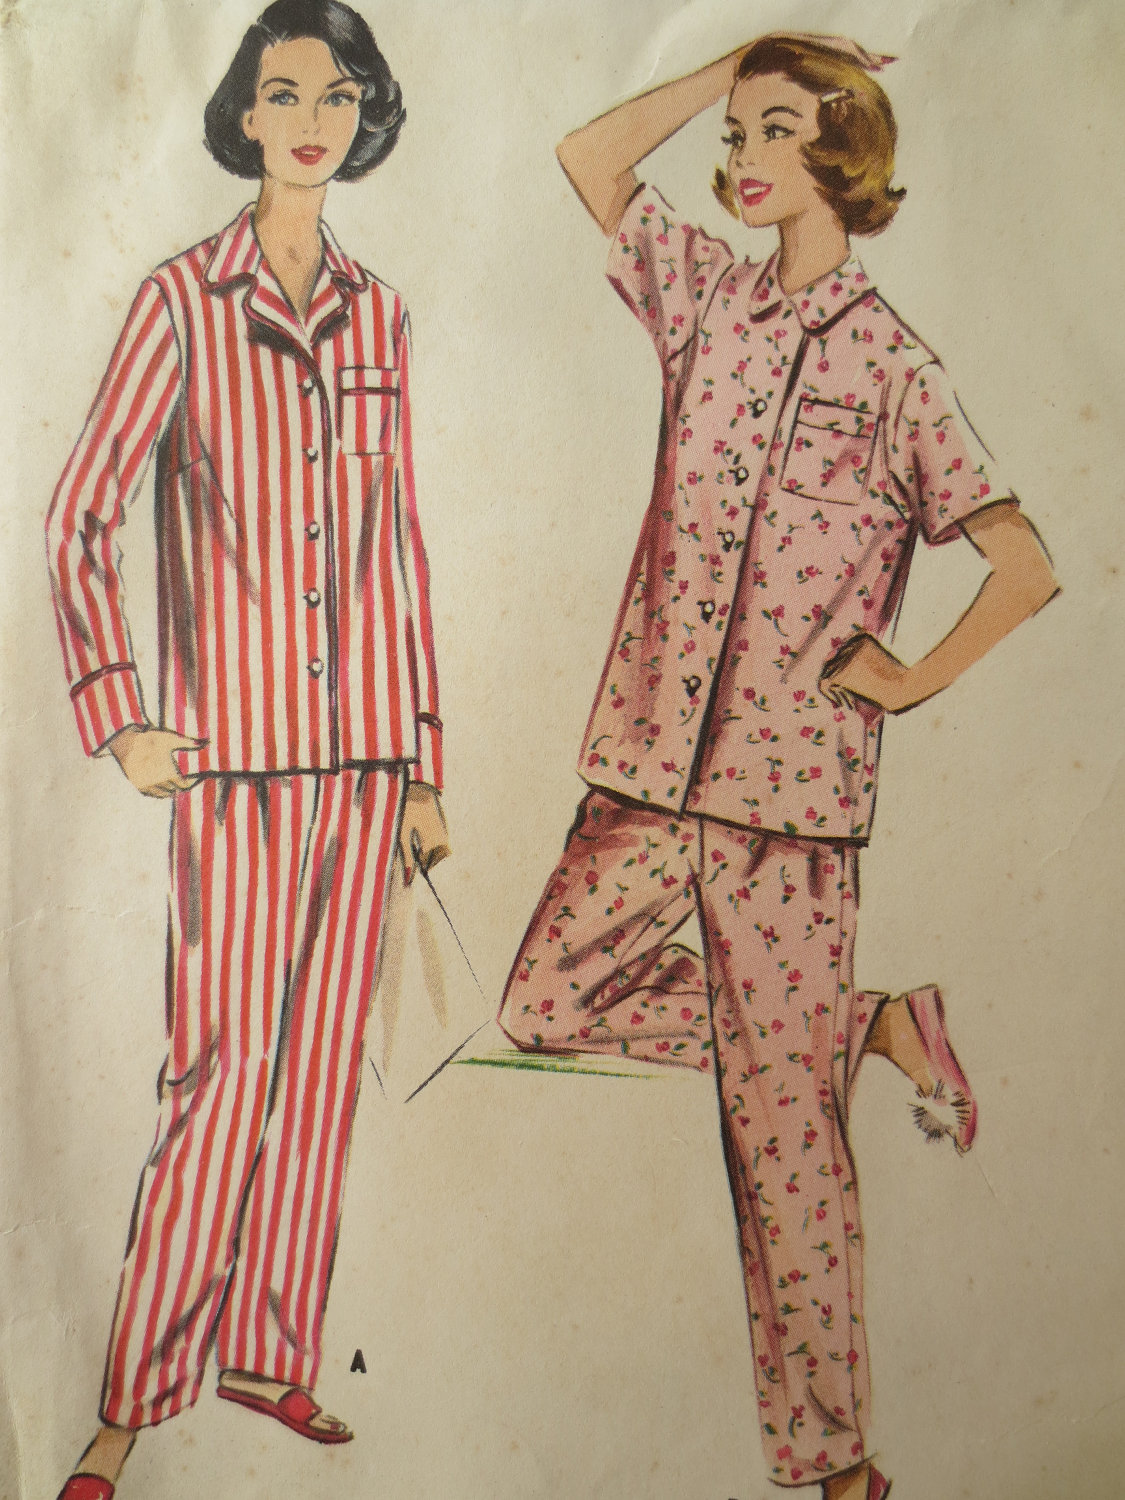 Staying in bed? That's the perfect time to wear your loudest, proudest Old Fashioned Pajamas. Our extensive collection of Old Fashioned Pajamas in a wide variety of styles allow you to wear your passion around the house.